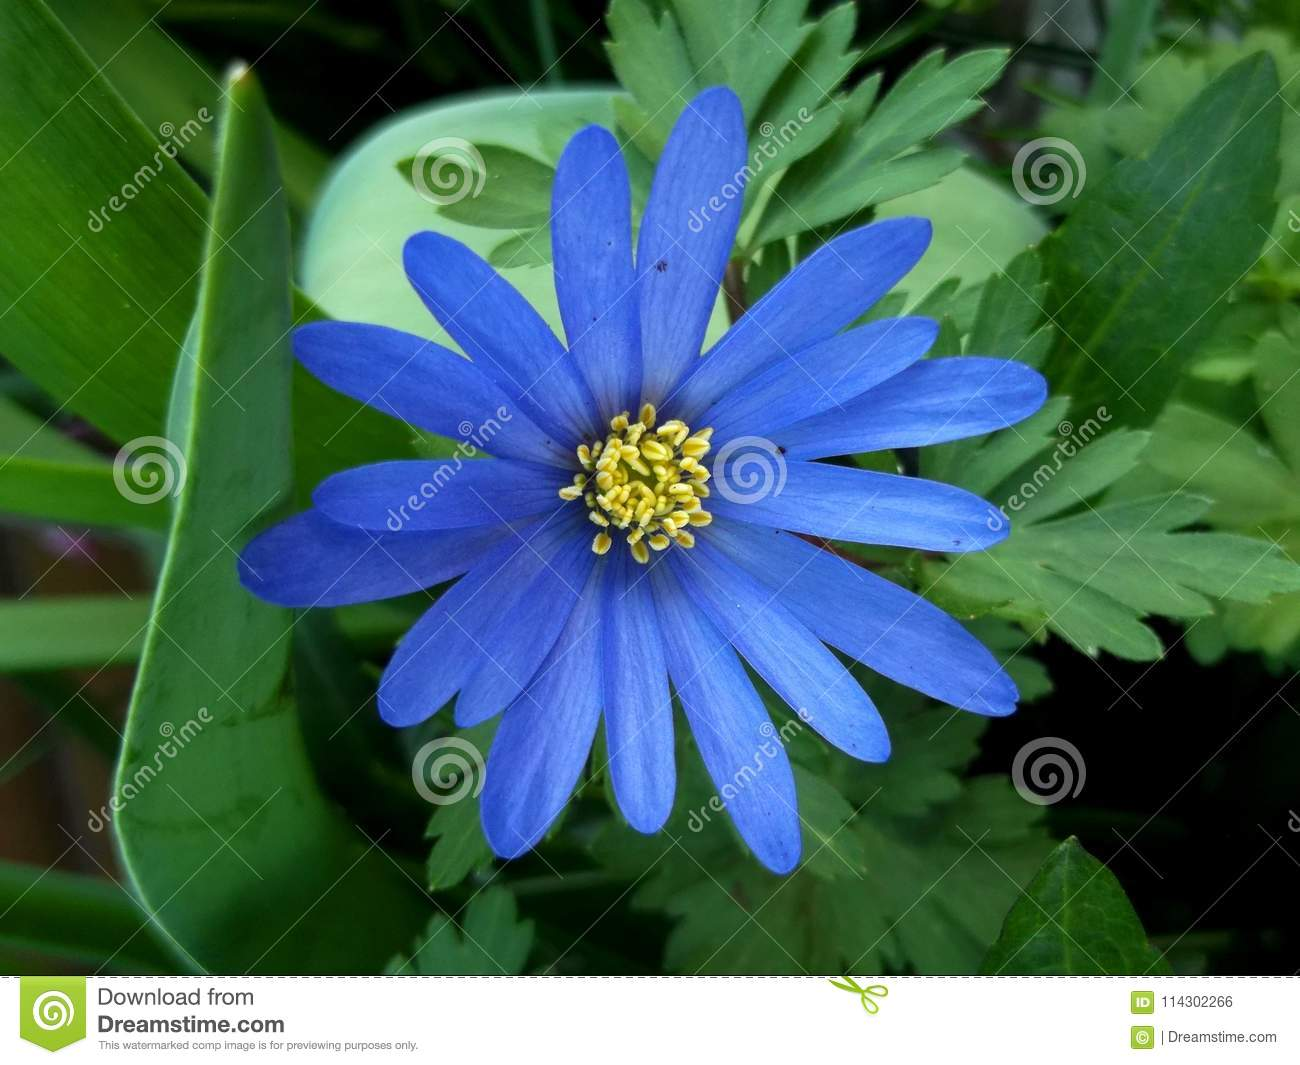 A Blue Anemone Blanda in the Woods